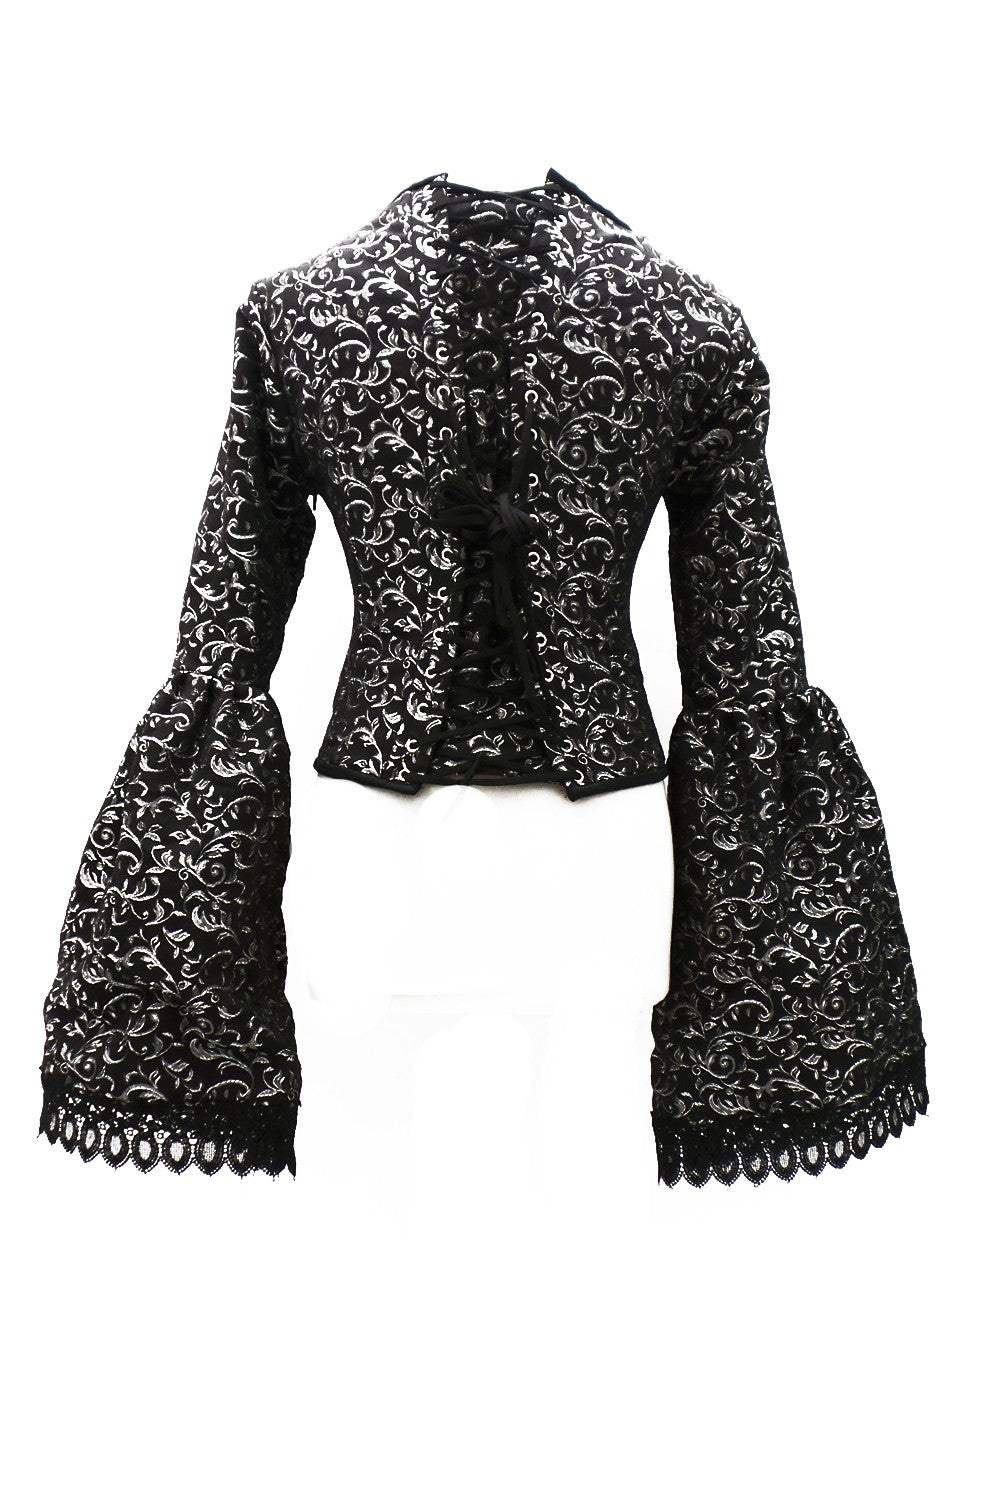 Medieval long-sleeved Steampunk brocade top